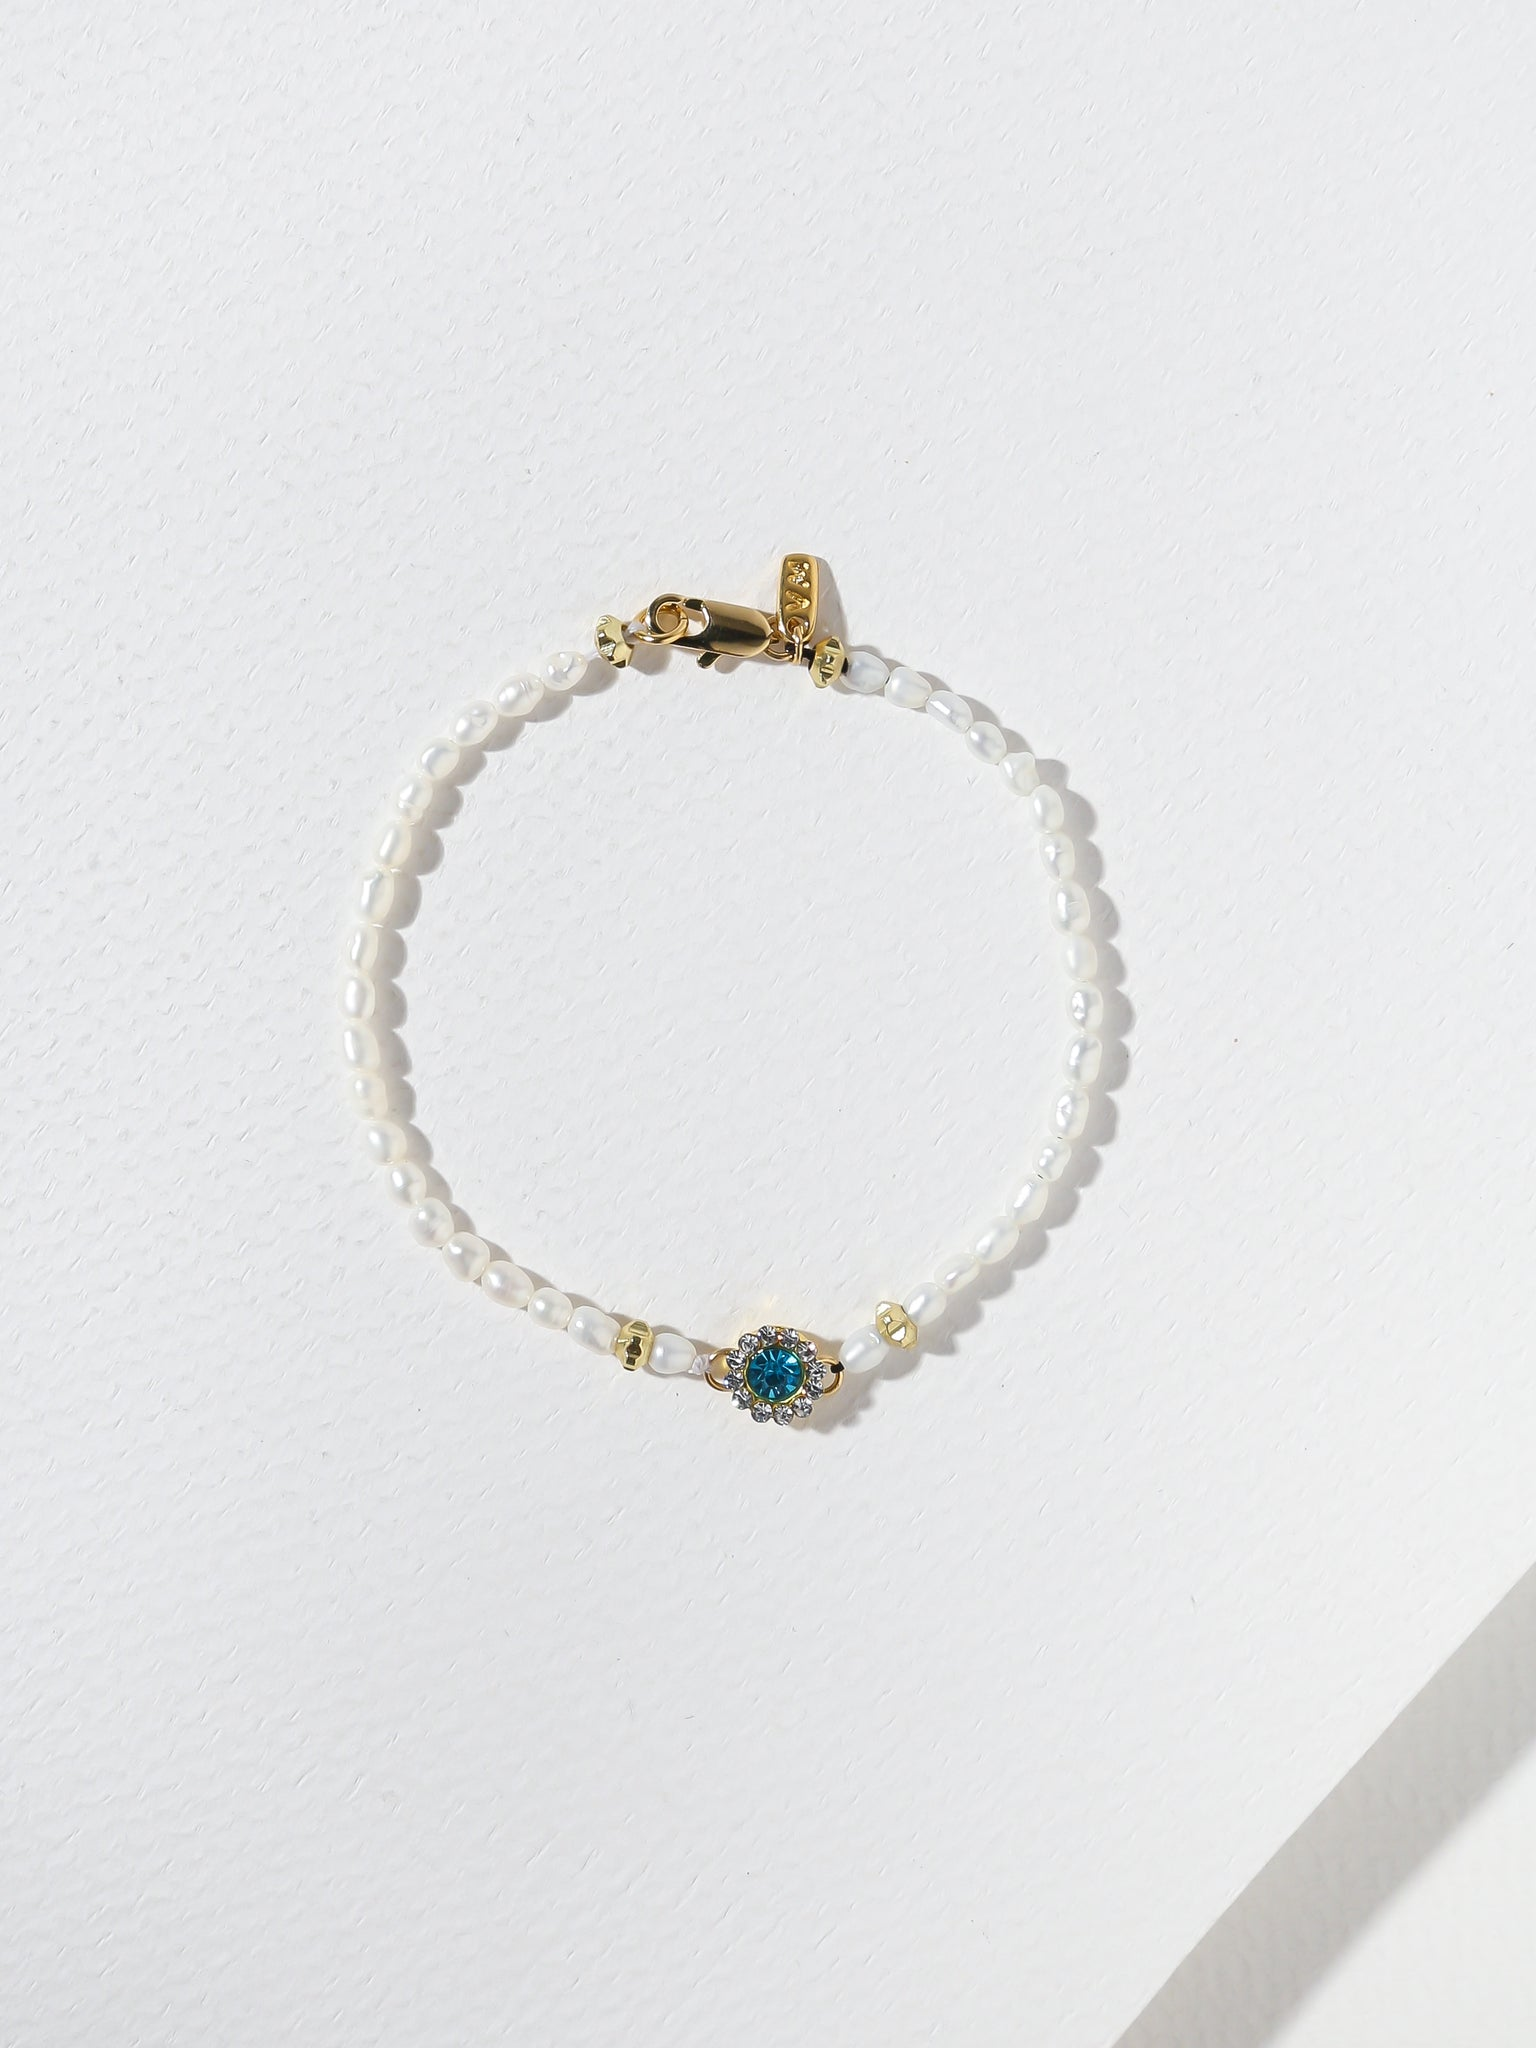 The Pearl Bloom Bracelet